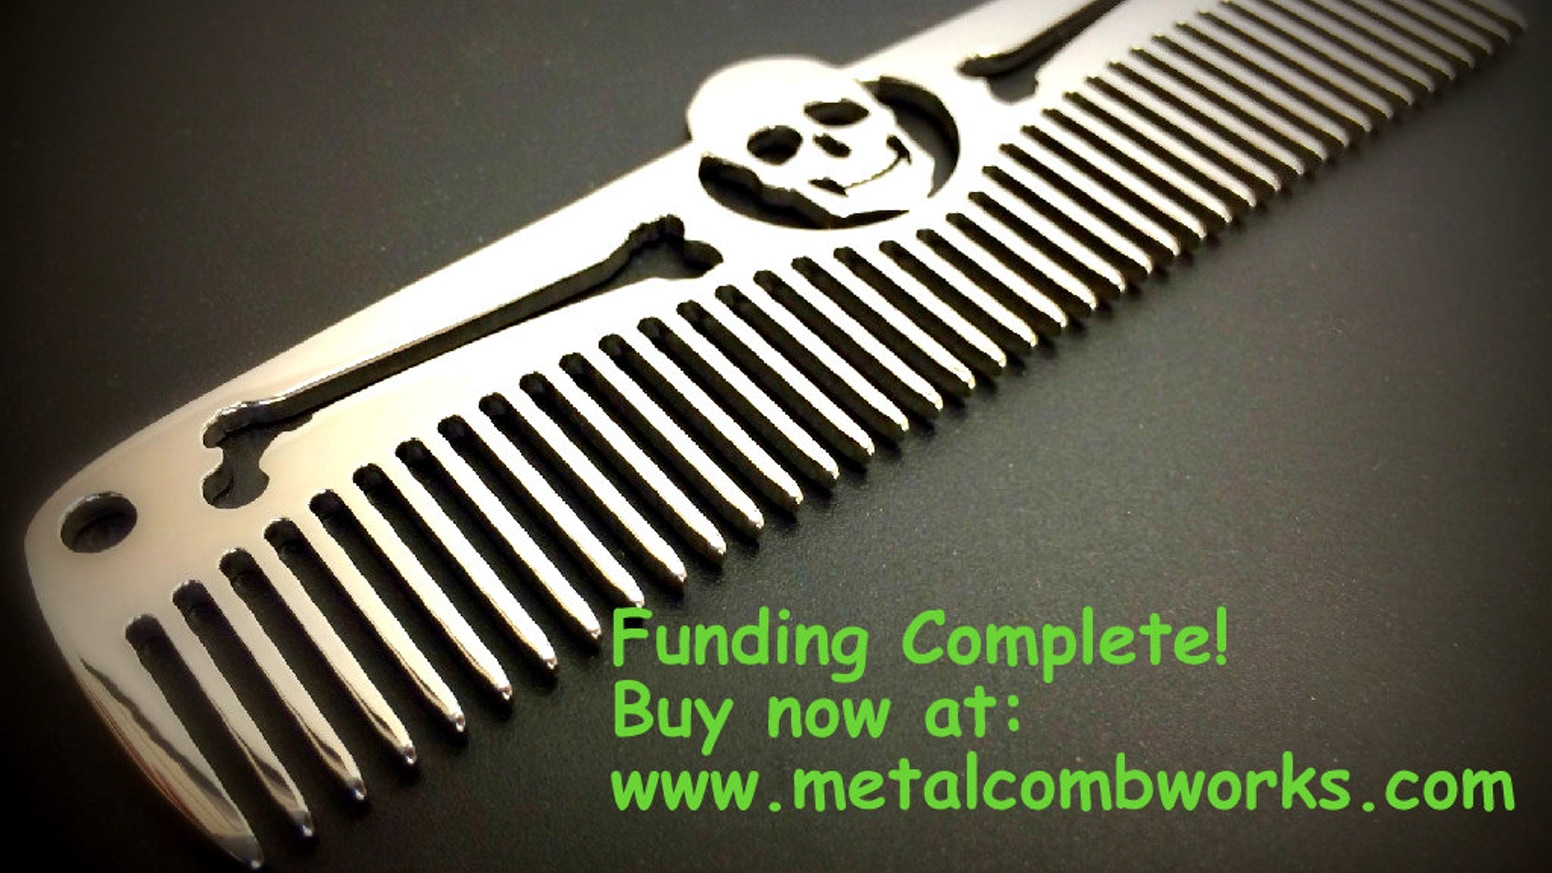 Buy @ METALCOMBWORKS.COM  Titanium & steel pocket combs.  Made in the USA. The perfect everyday carry EDC designed to last a lifetime.